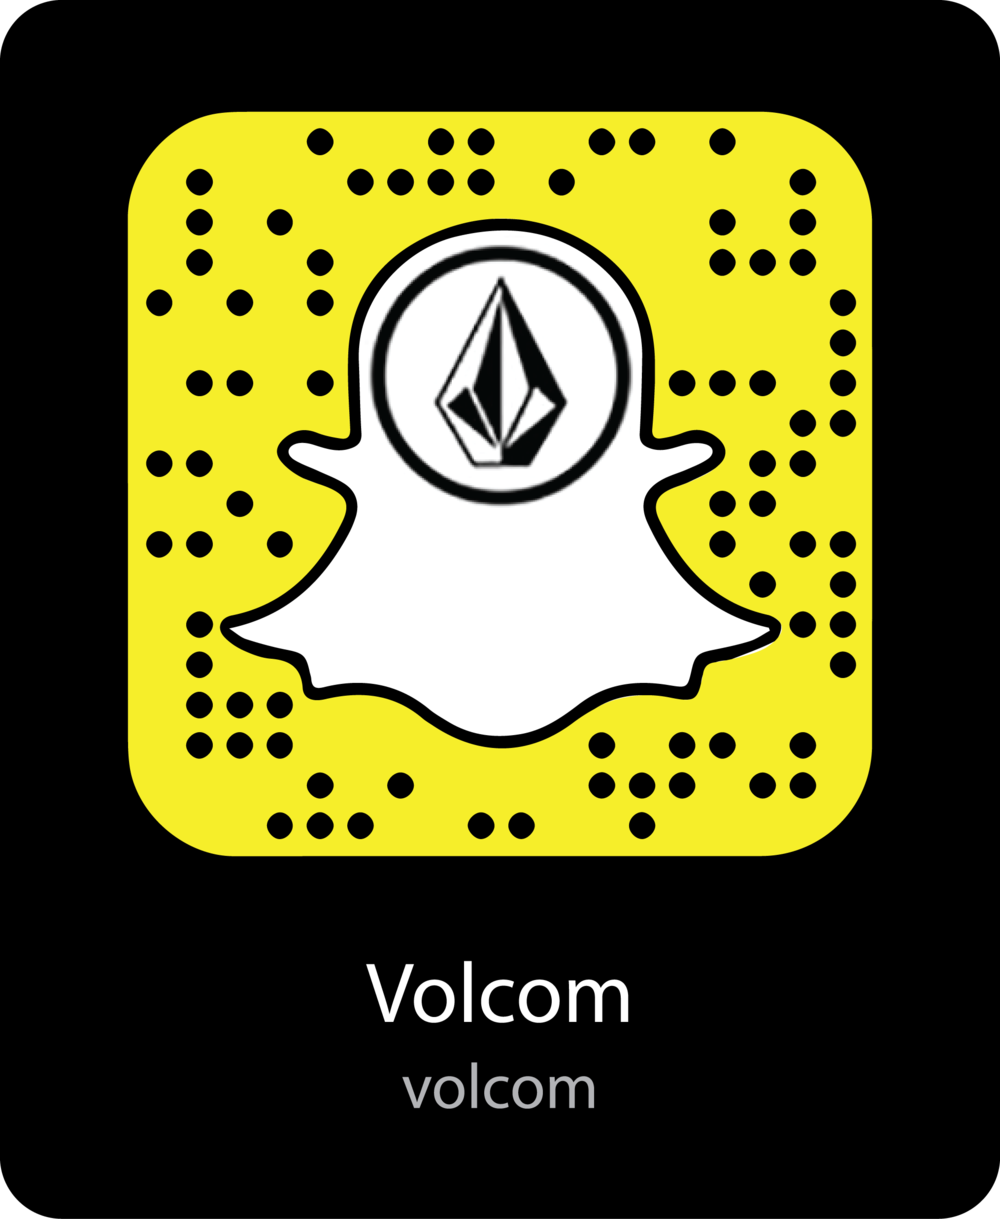 volcom-Brands-snapchat-snapcode.png